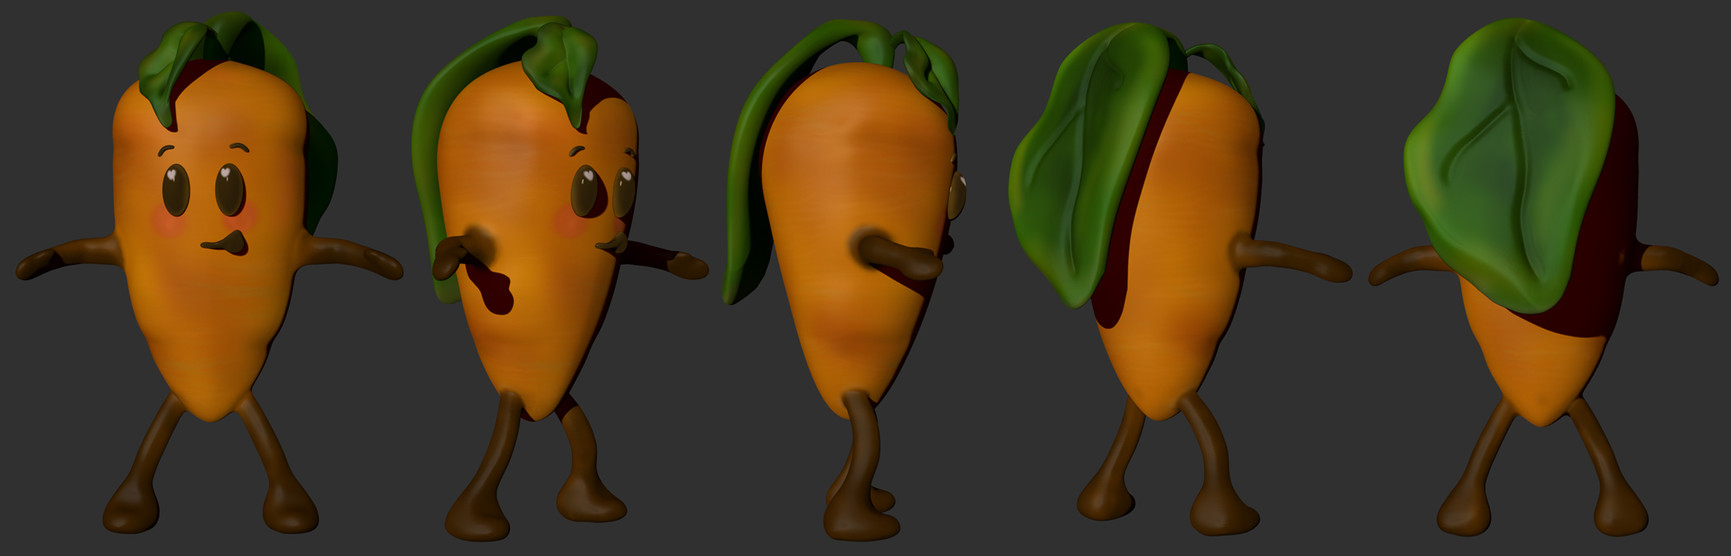 carrold revised final turnaround.jpg